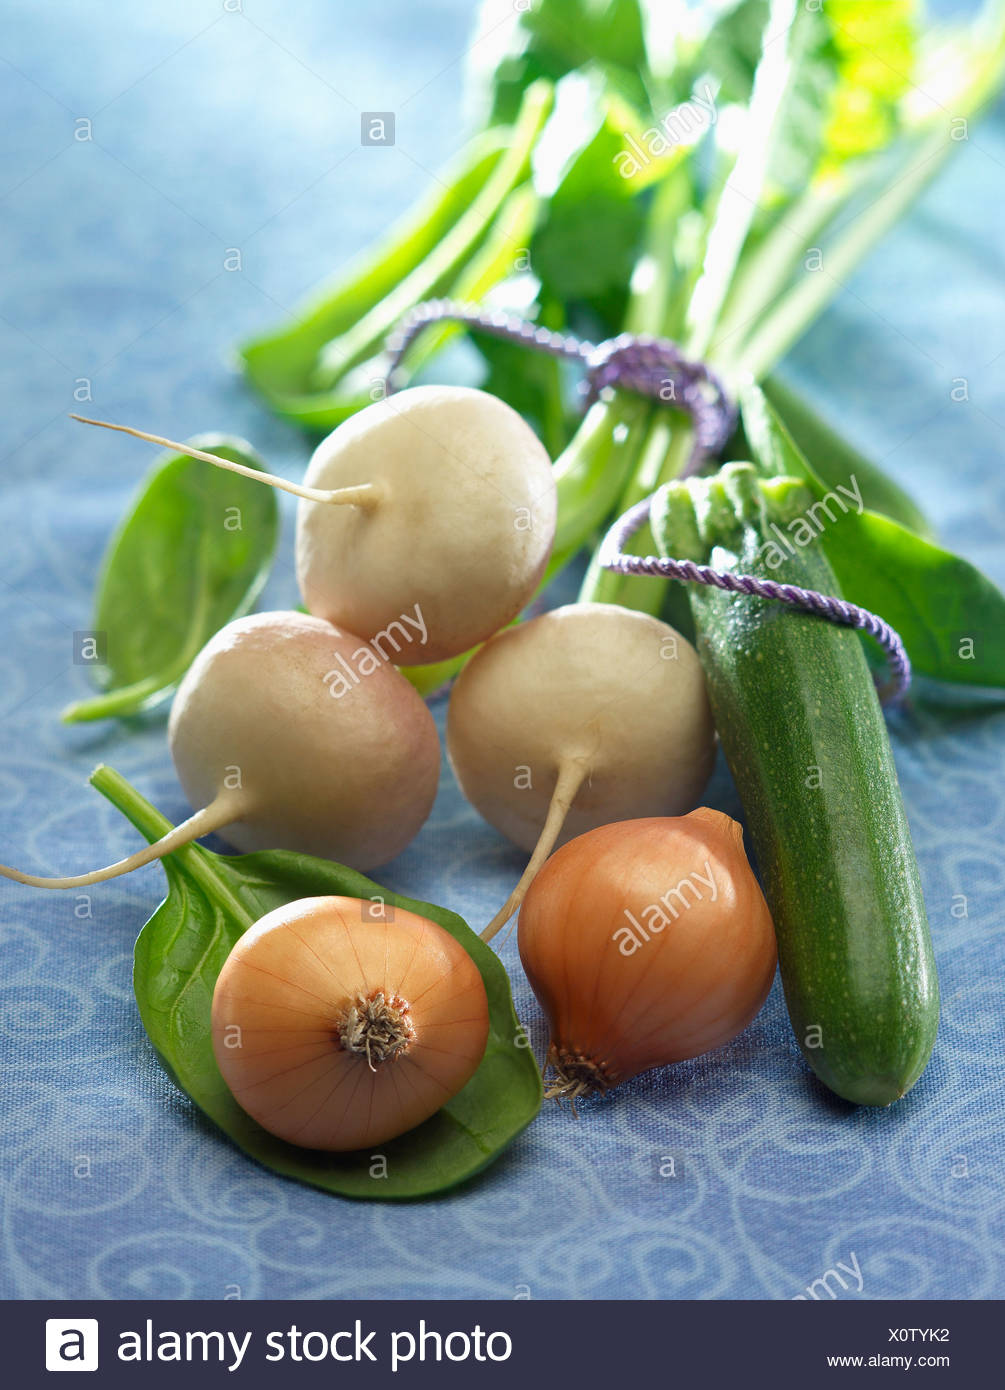 Onions,turnips and zucchinis - Stock Image